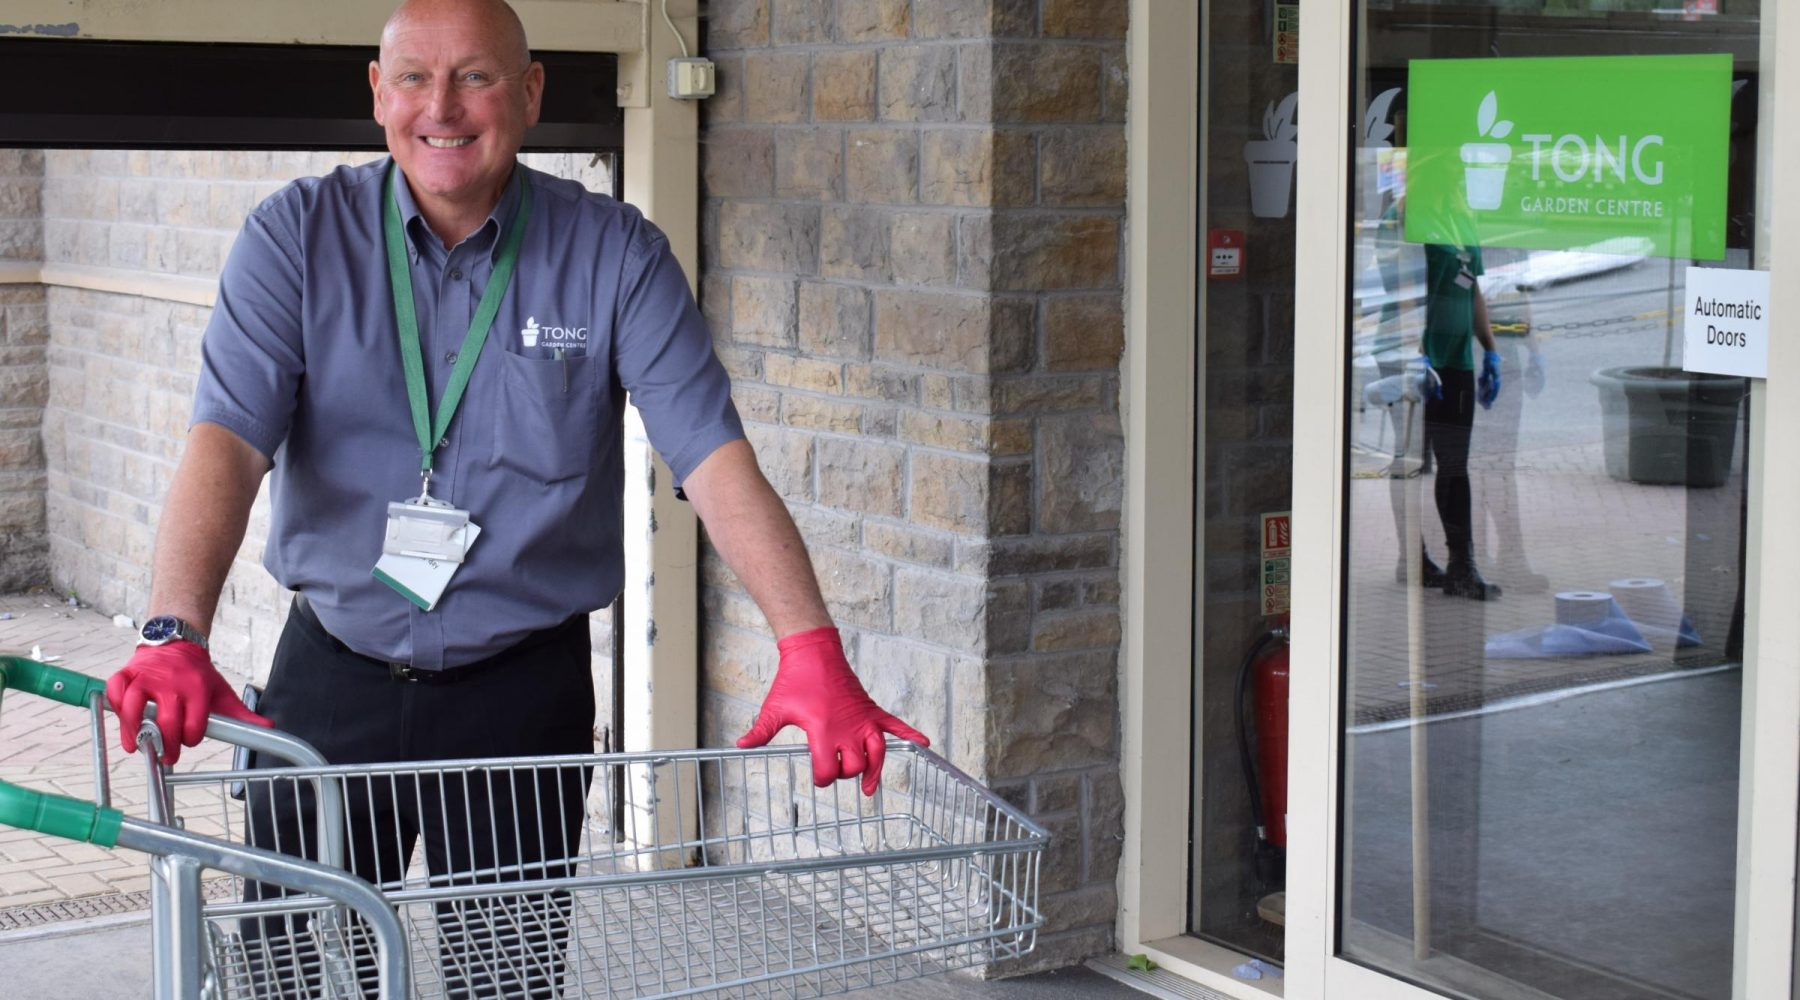 Public using Tong Garden Centre are thanked